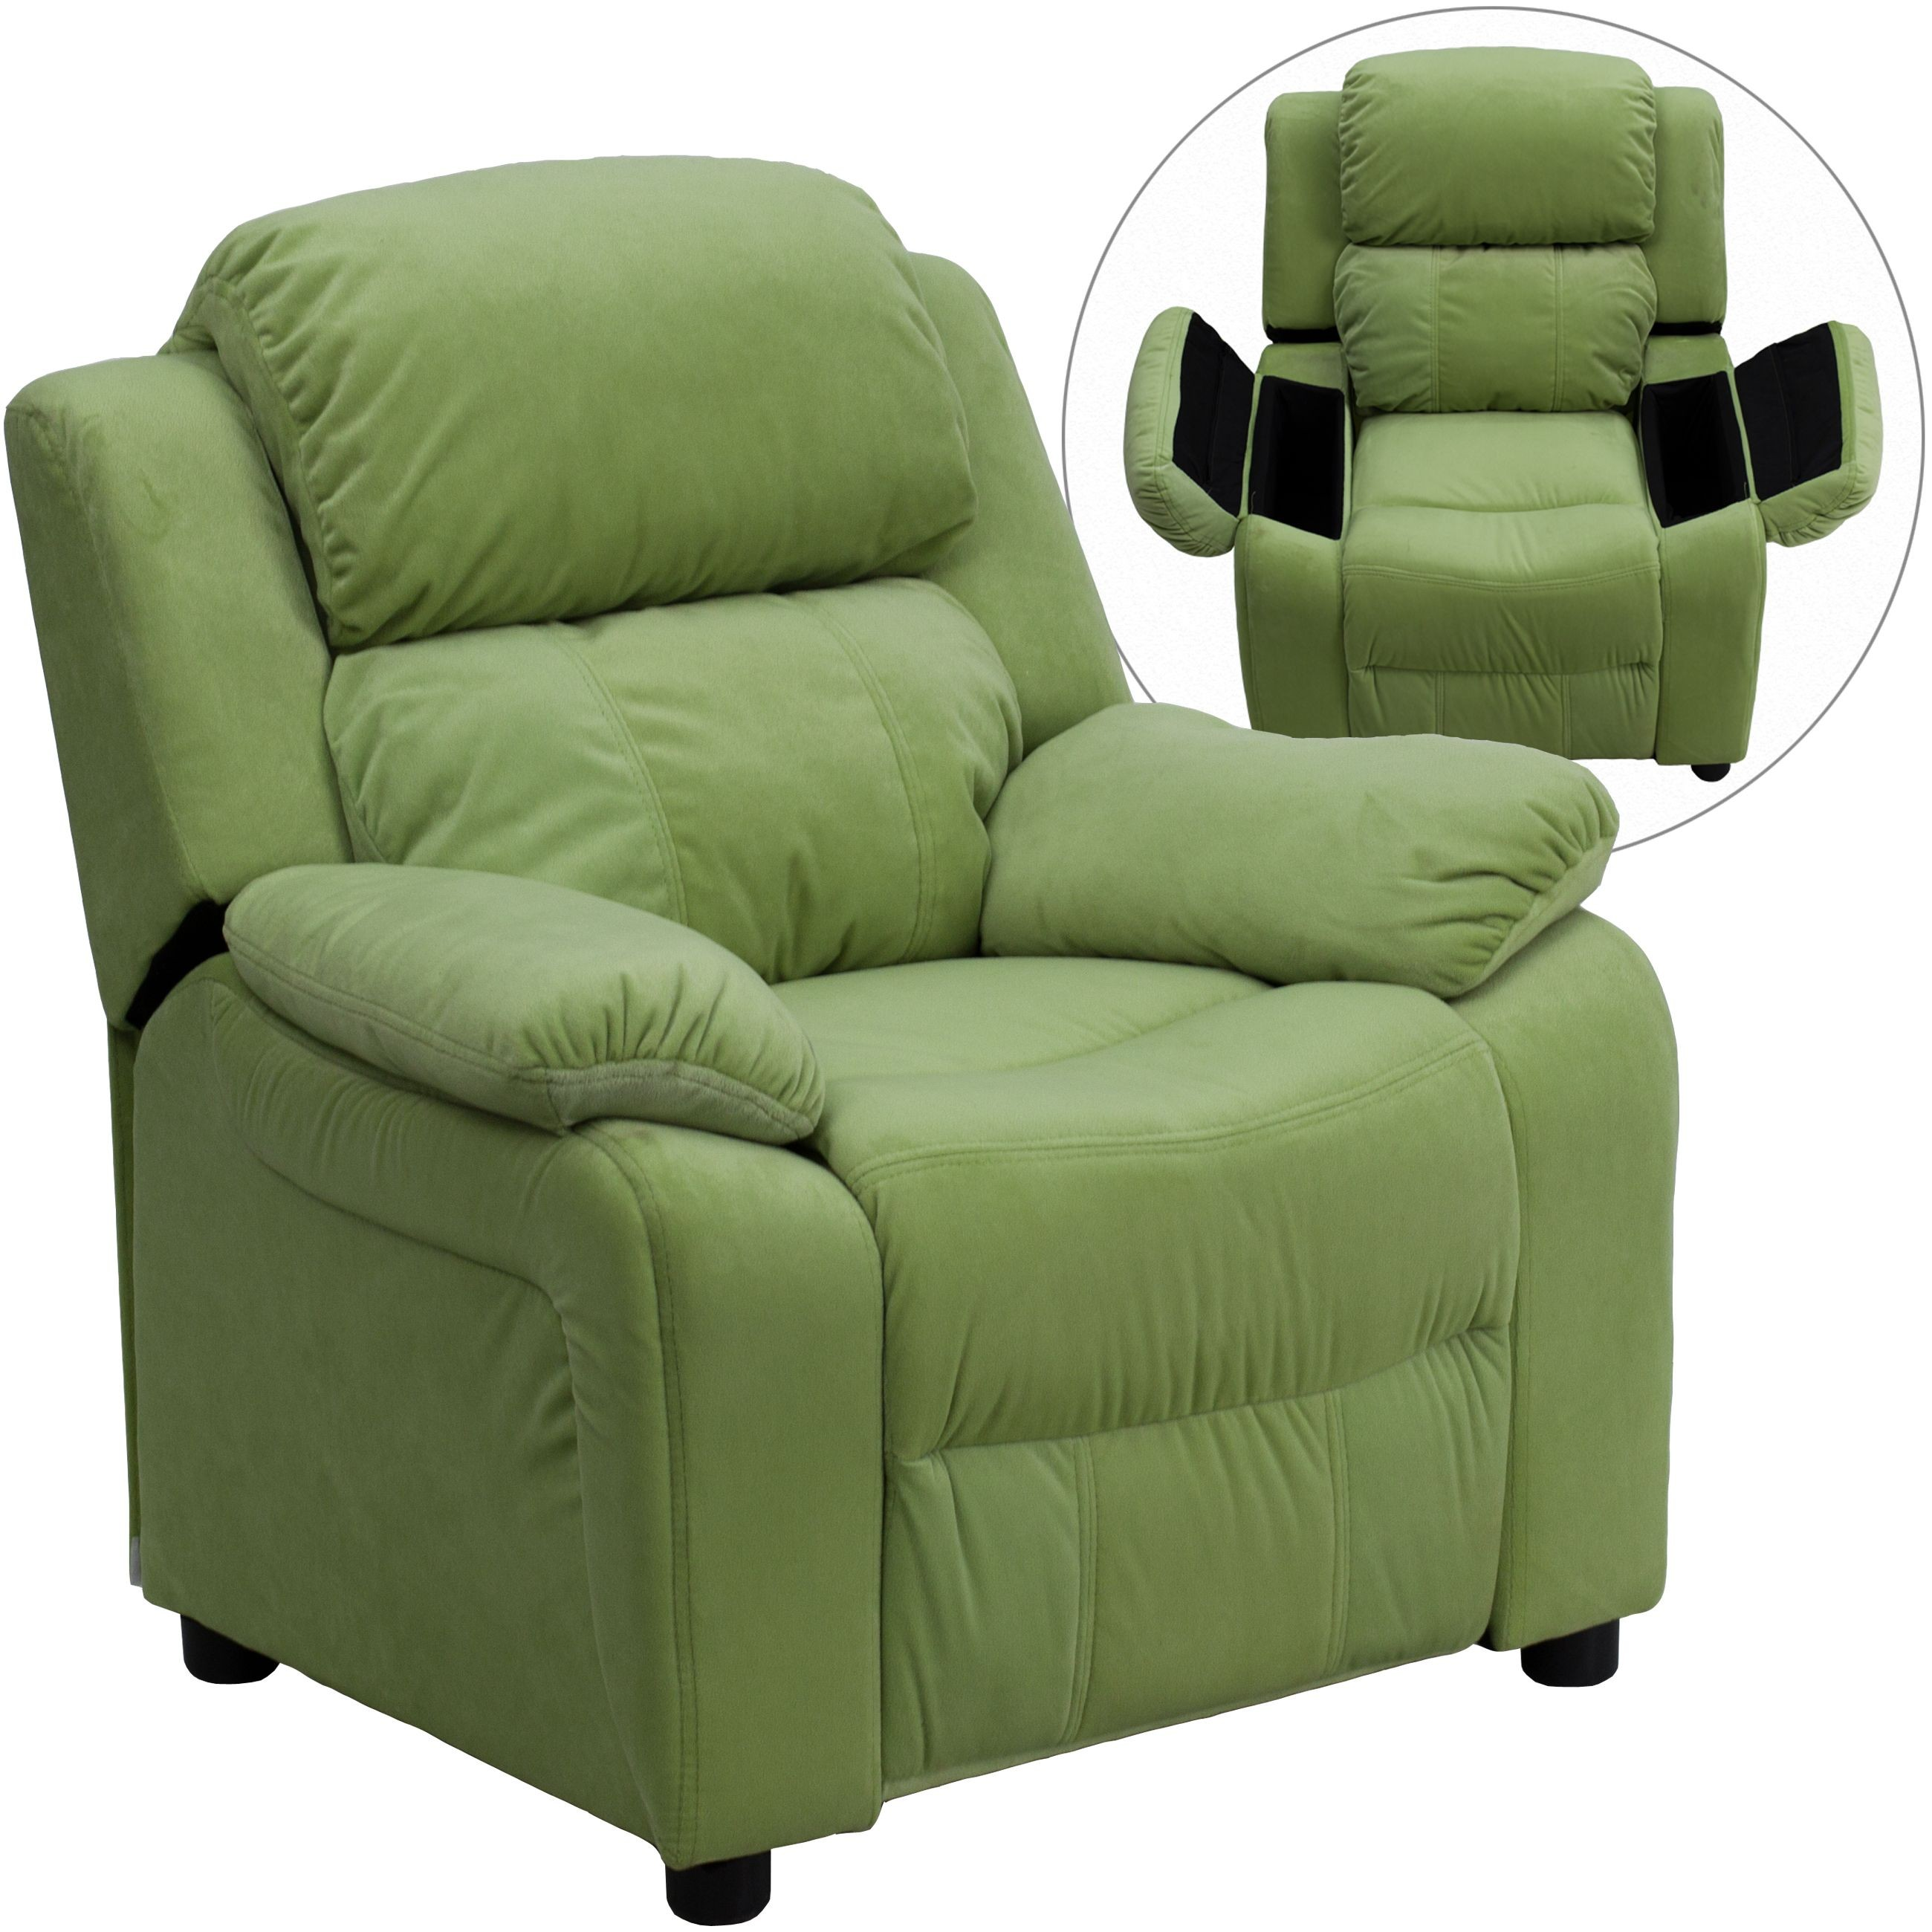 Deluxe Heavily Padded Contemporary Avocado Microfiber Kids Recliner with Storage Arms